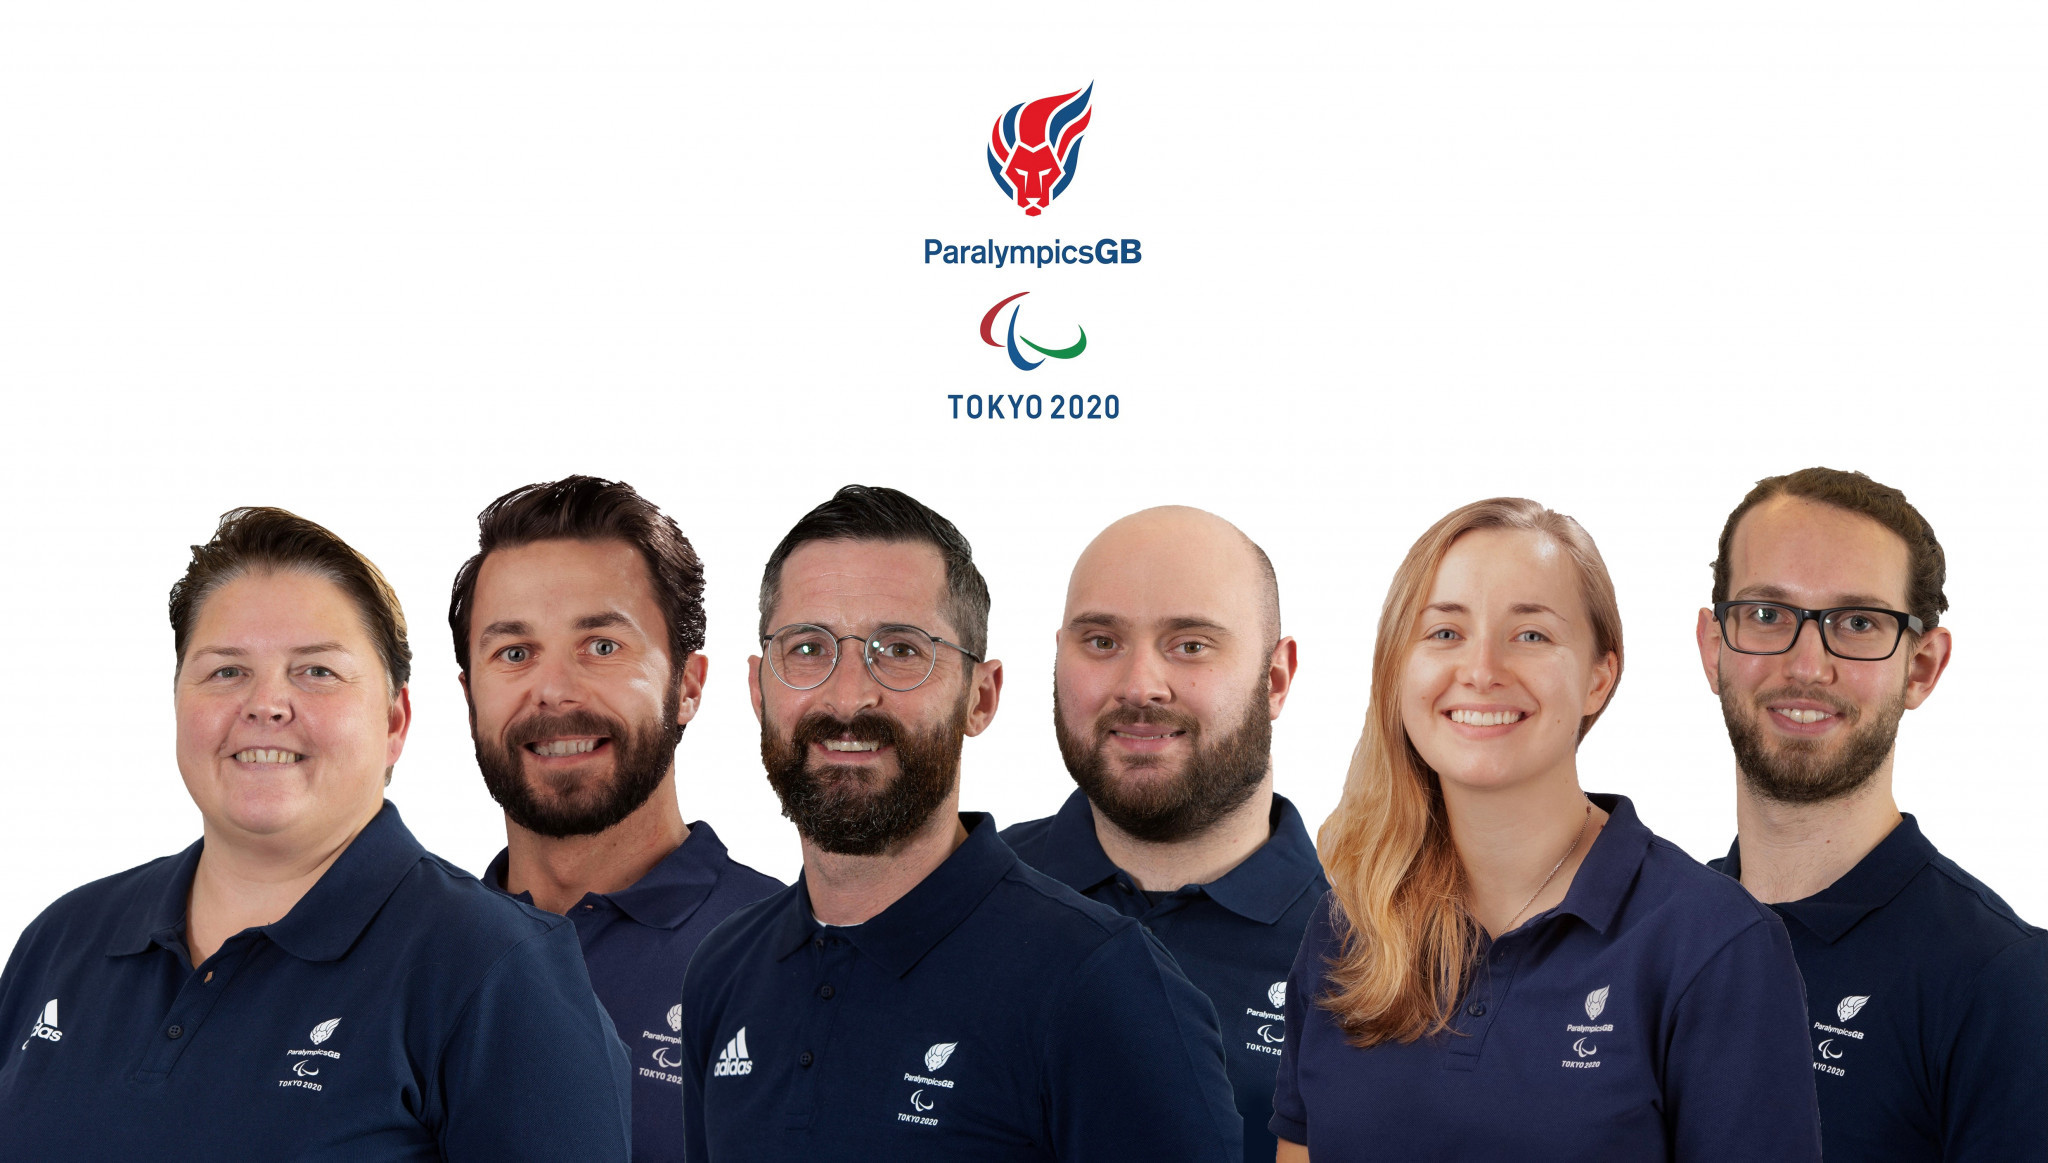 Six athletes have been selected to represent Britain in Para shooting at Tokyo 2020 ©ParalympicsGB